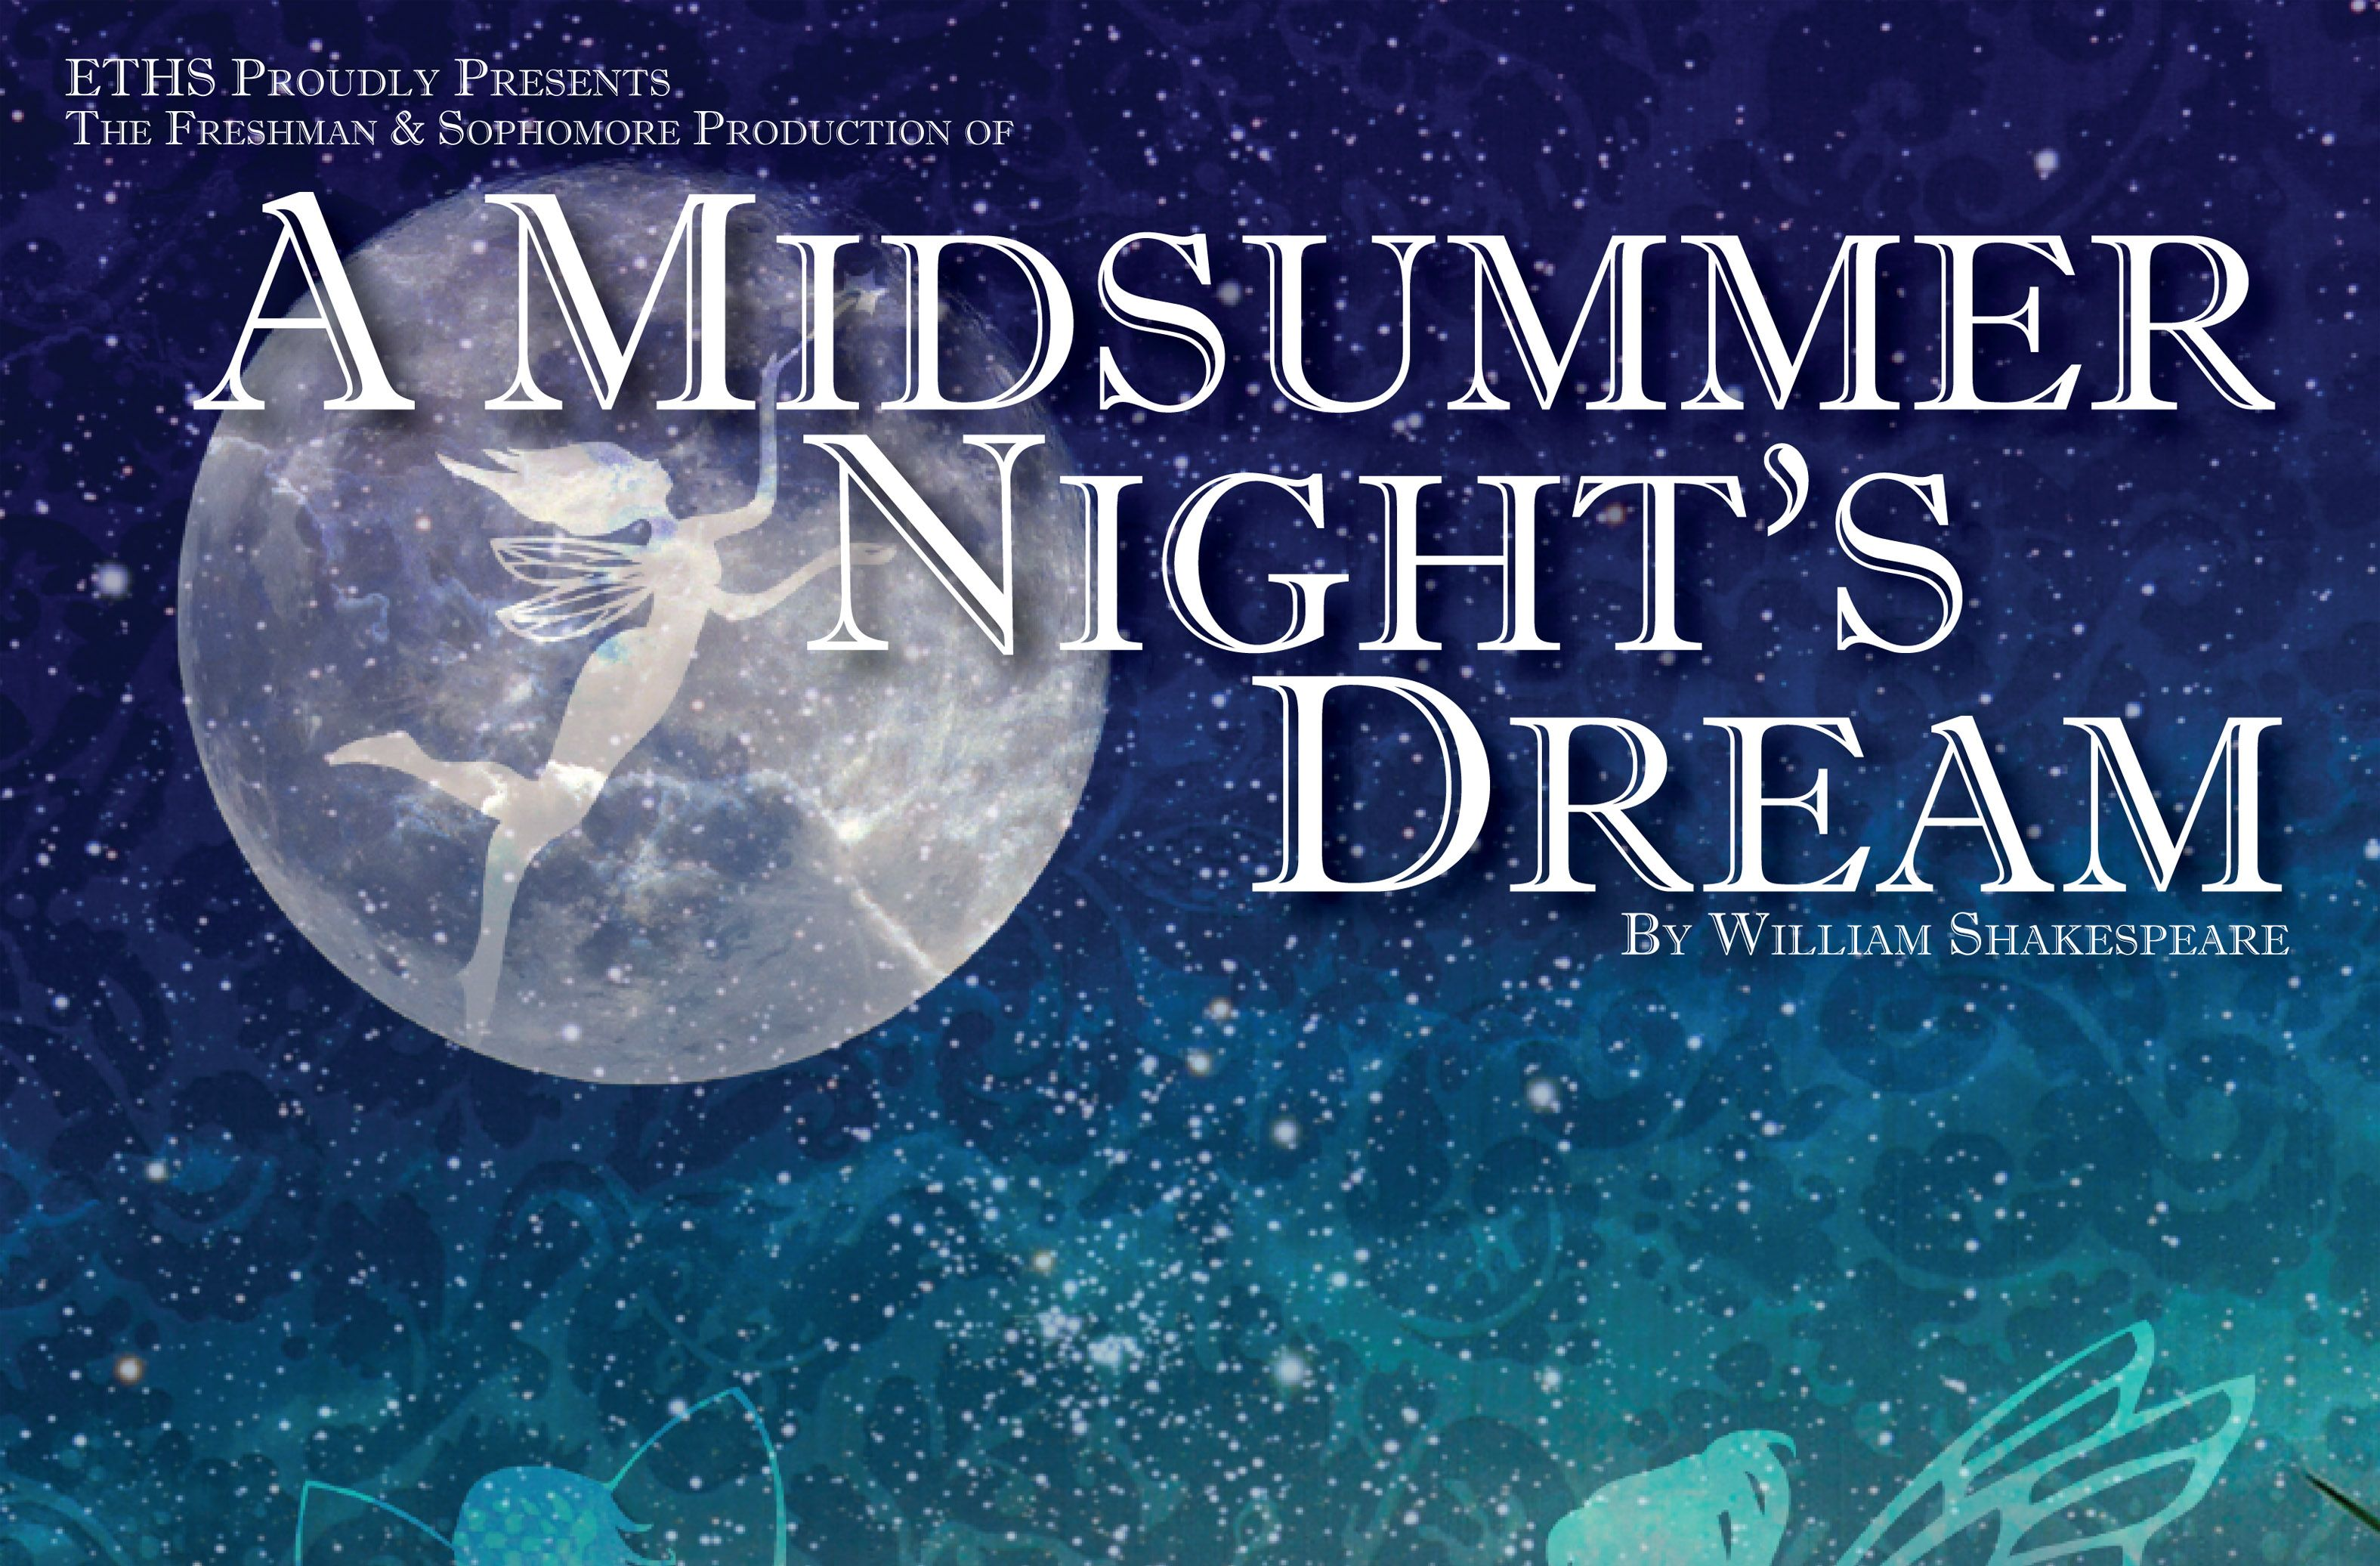 contrast in midsummer night's dream essay Discuss the similarities and differences in the presentation of theseus and oberon in midsummer nights dream theseus shows how power can be used wisely and responsibly in contrast to oberon who meddles and makes mistakes related university degree a midsummer nights dream essays.